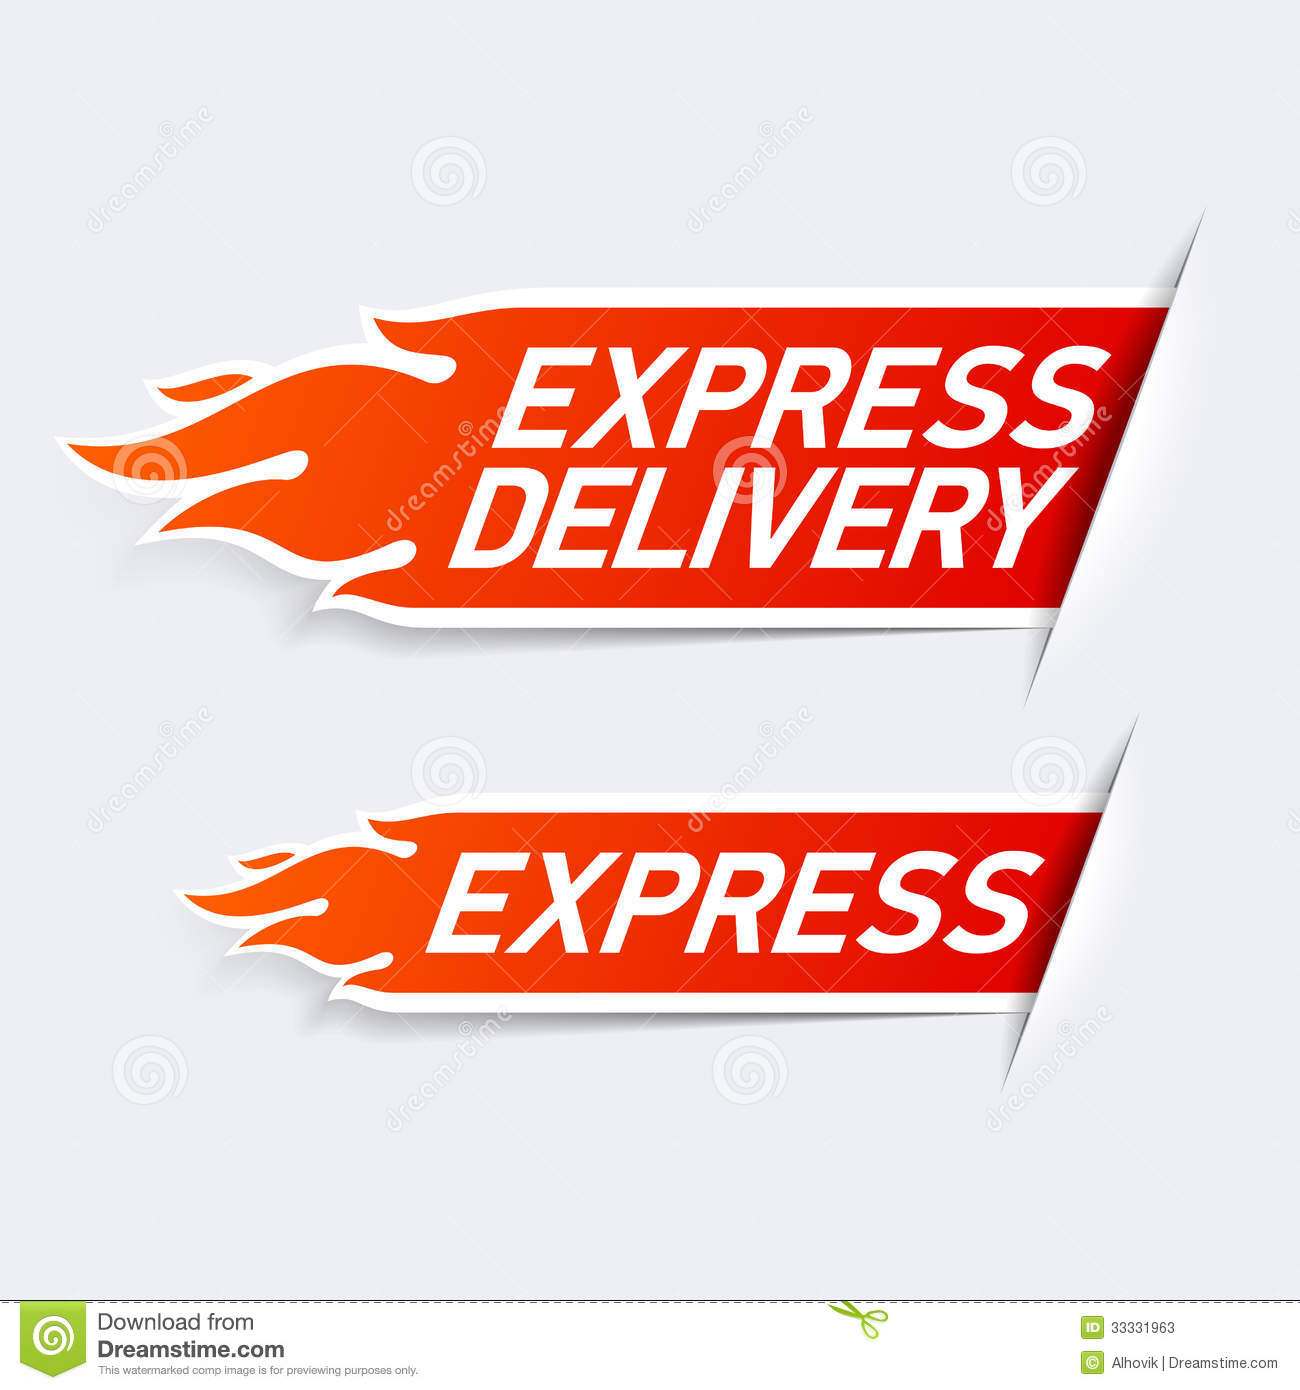 Express Delivery Stock Photos Image 33331963